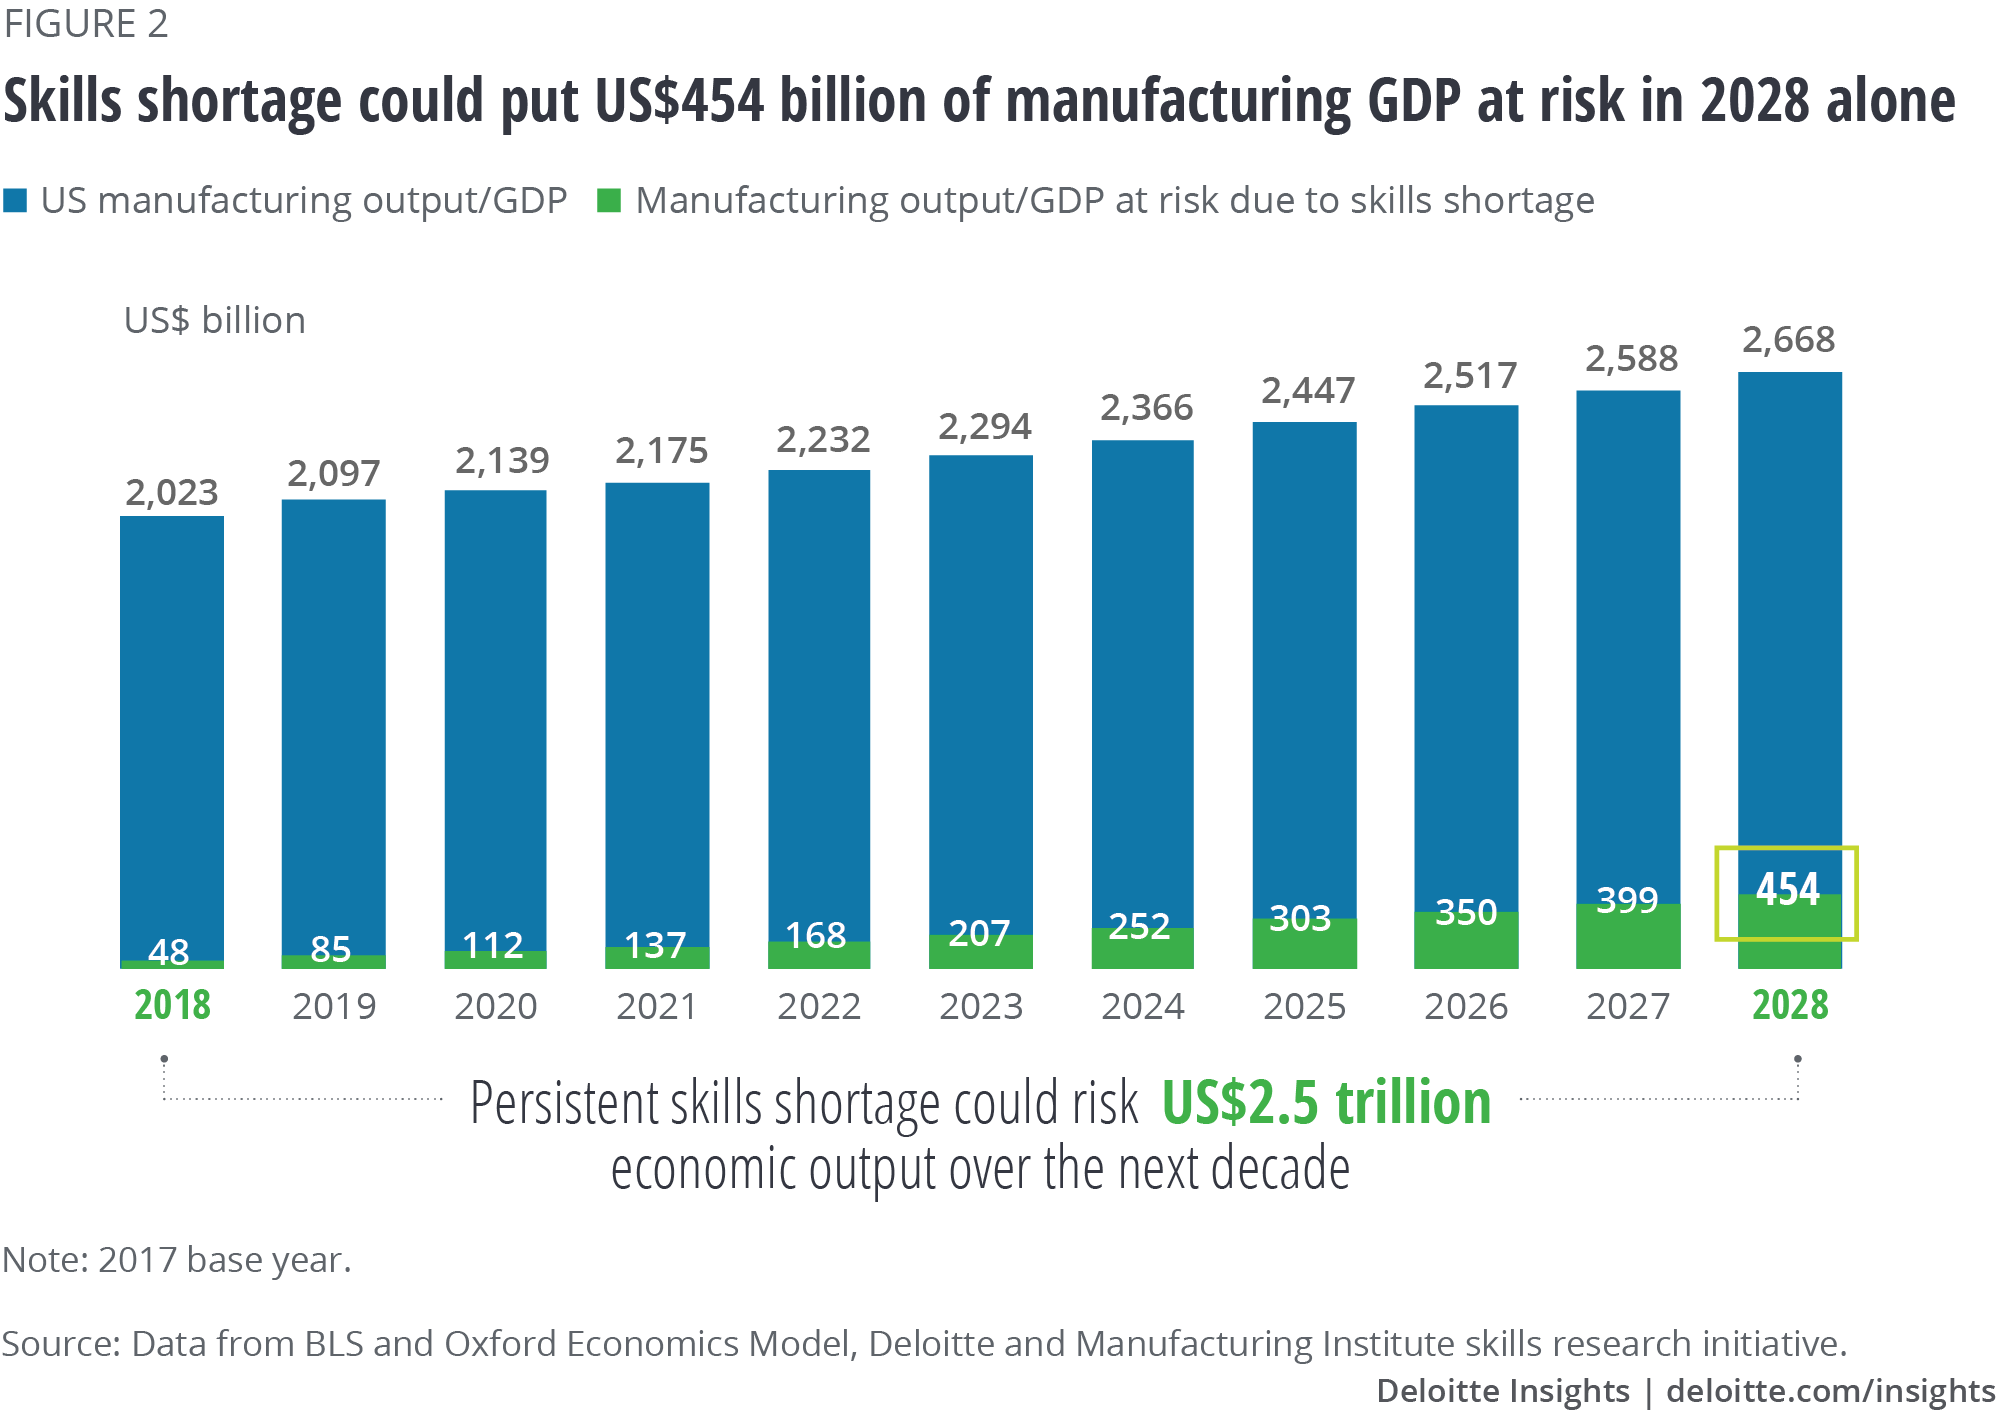 The impact of a skills shortage on US manufacturing GDP